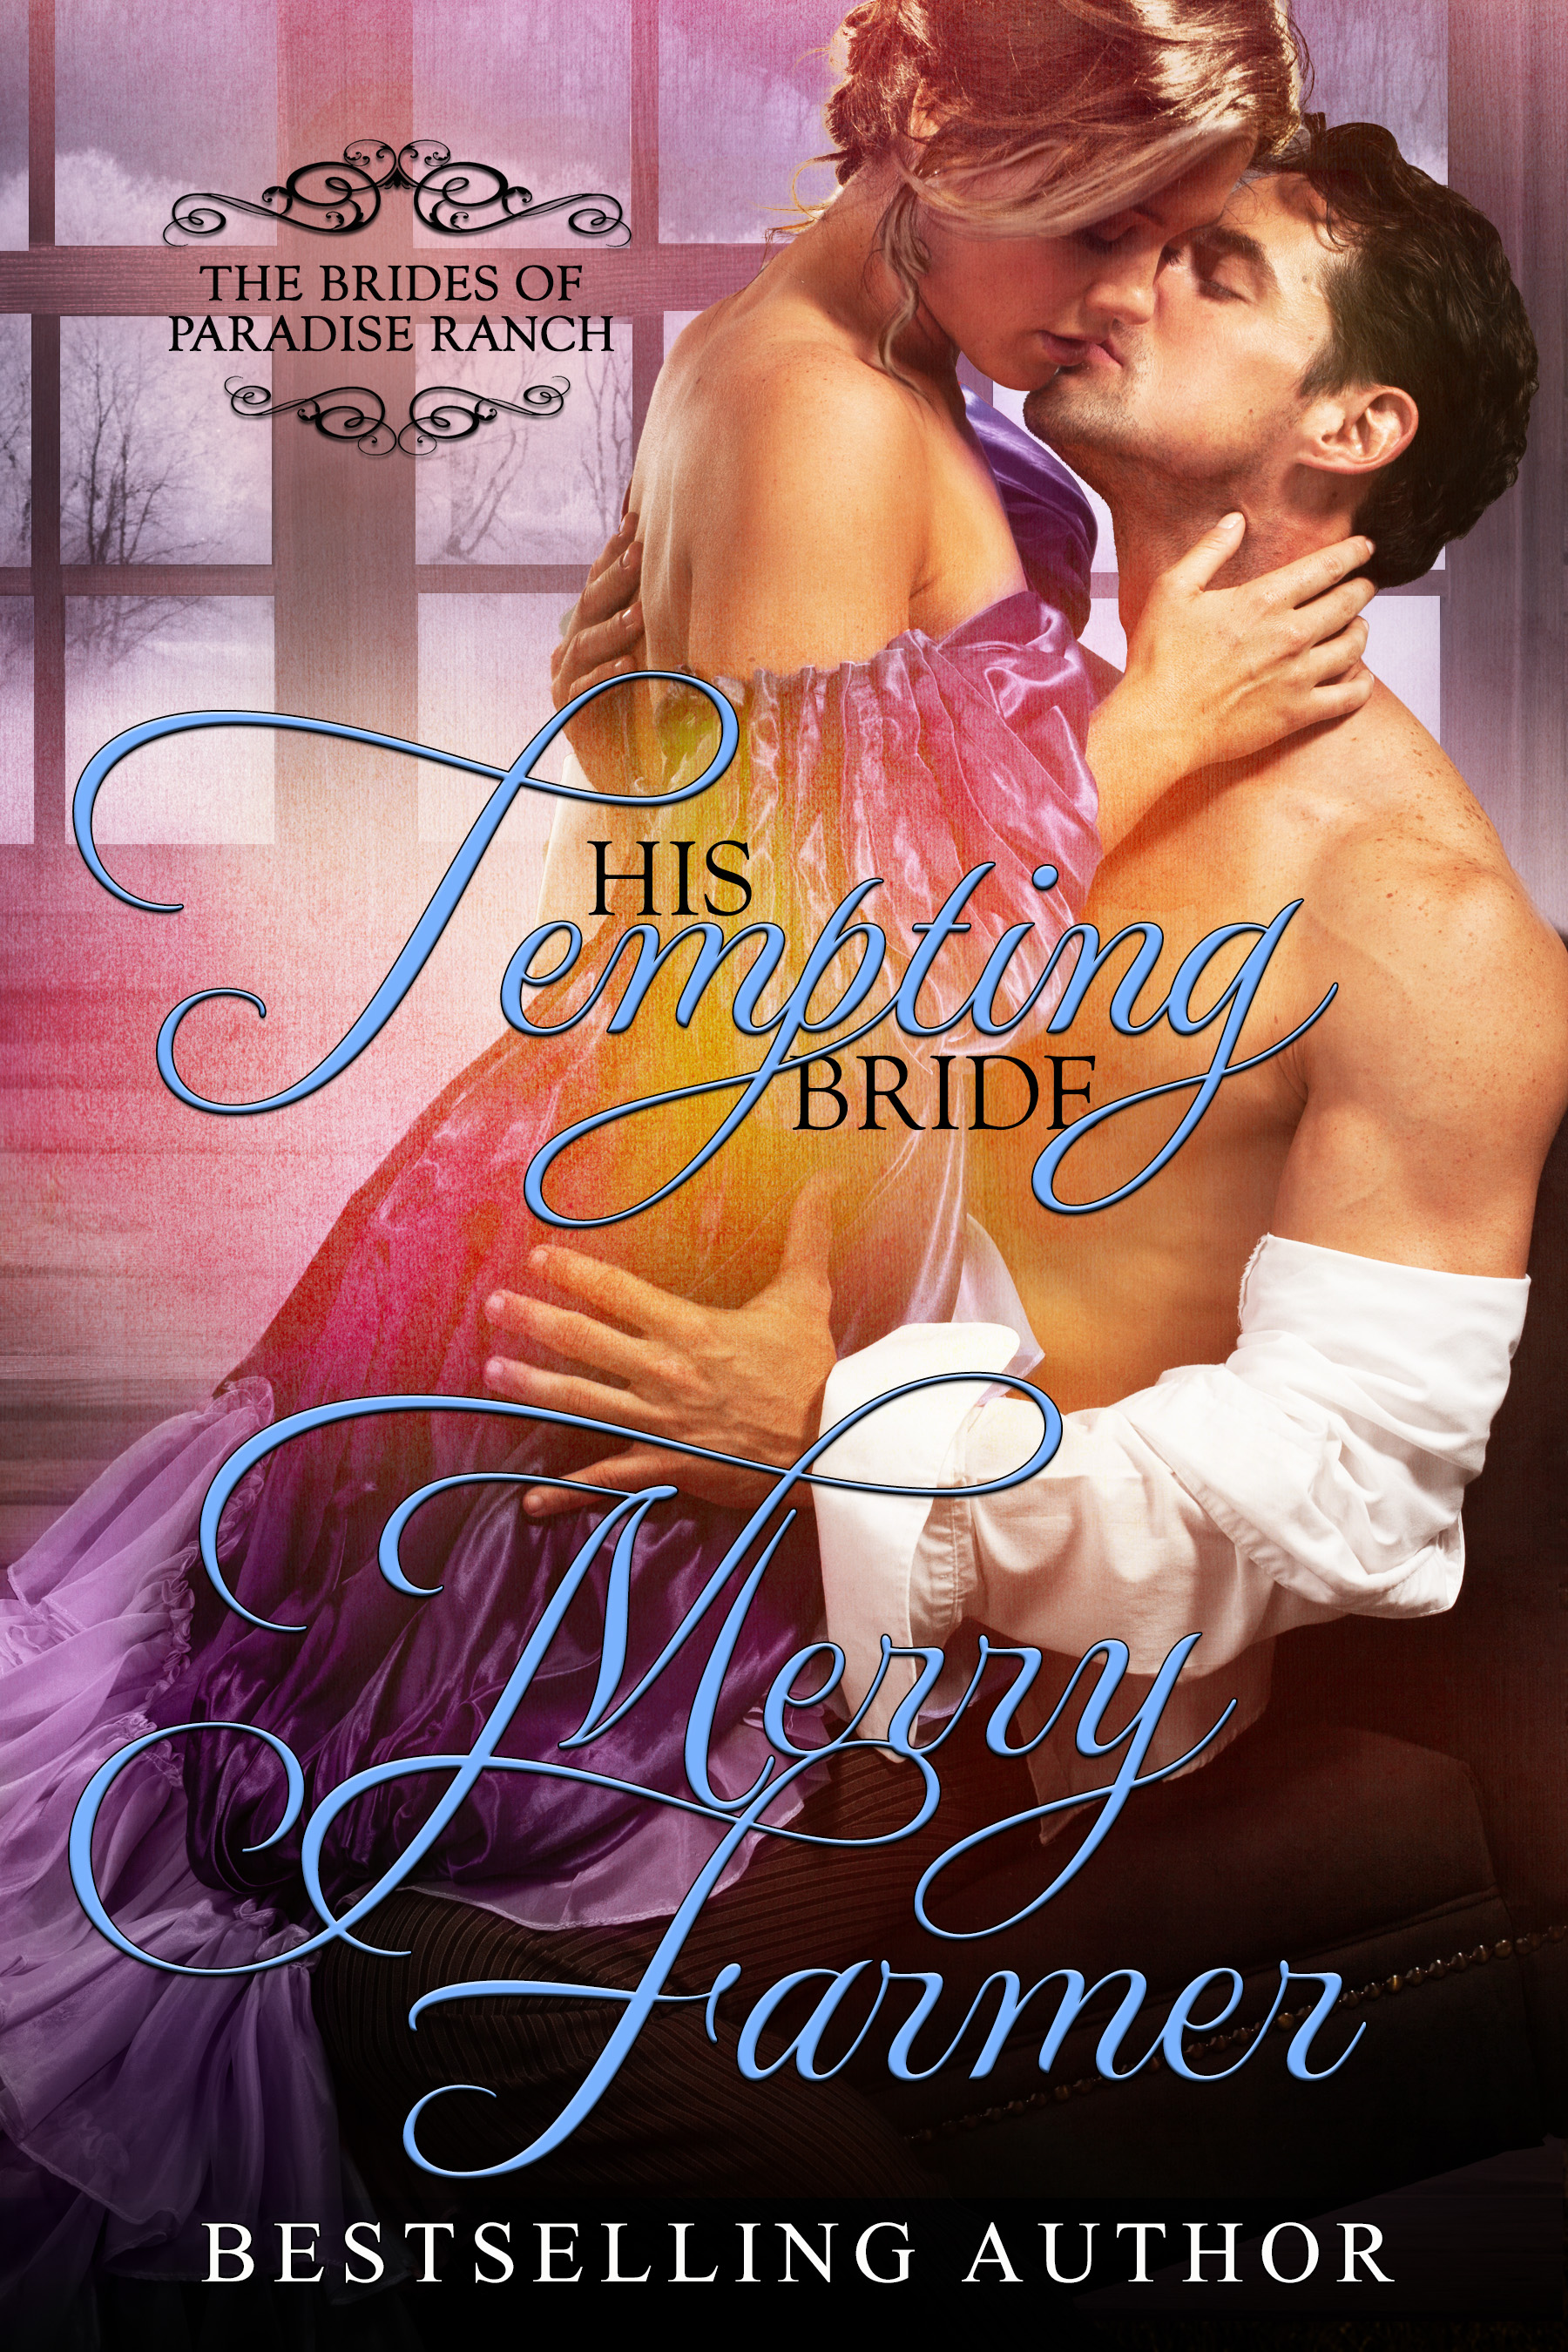 """His Tempting Bride (Book 5) - Miriam Long has been running for her whole life—running from her sinful past, running from her shameful mistakes, and running from the guilt of chickening out of her one chance to start over. But now, several hard months after refusing to get off the train and marry the man who sent for her as a mail-order bride, Miriam finds herself in Haskell, Wyoming once more. Only this time, more lives than just hers are at stake.Cody Montrose is instantly smitten with the fun and flirty woman he meets by chance at Haskell's train station…until he learns that the object of his temptation is the very bride who stood him up. Anger battles with desire as the two of them struggle with the disaster that should have been their union months ago.But there's more to worry about than their complex romance. Miriam has come to town with a traveling troupe of gypsy performers, and if they can't sing for their supper, they will all starve. In true Haskell style, the town rallies behind them, but is it enough to save the day and to rekindle the romance that both Miriam and Cody missed out on before?PLEASE BE ADVISED: Steam Level = HOTIf you would like to read this story without any """"scenes,"""" check out Miriam: The Tempting Bride."""